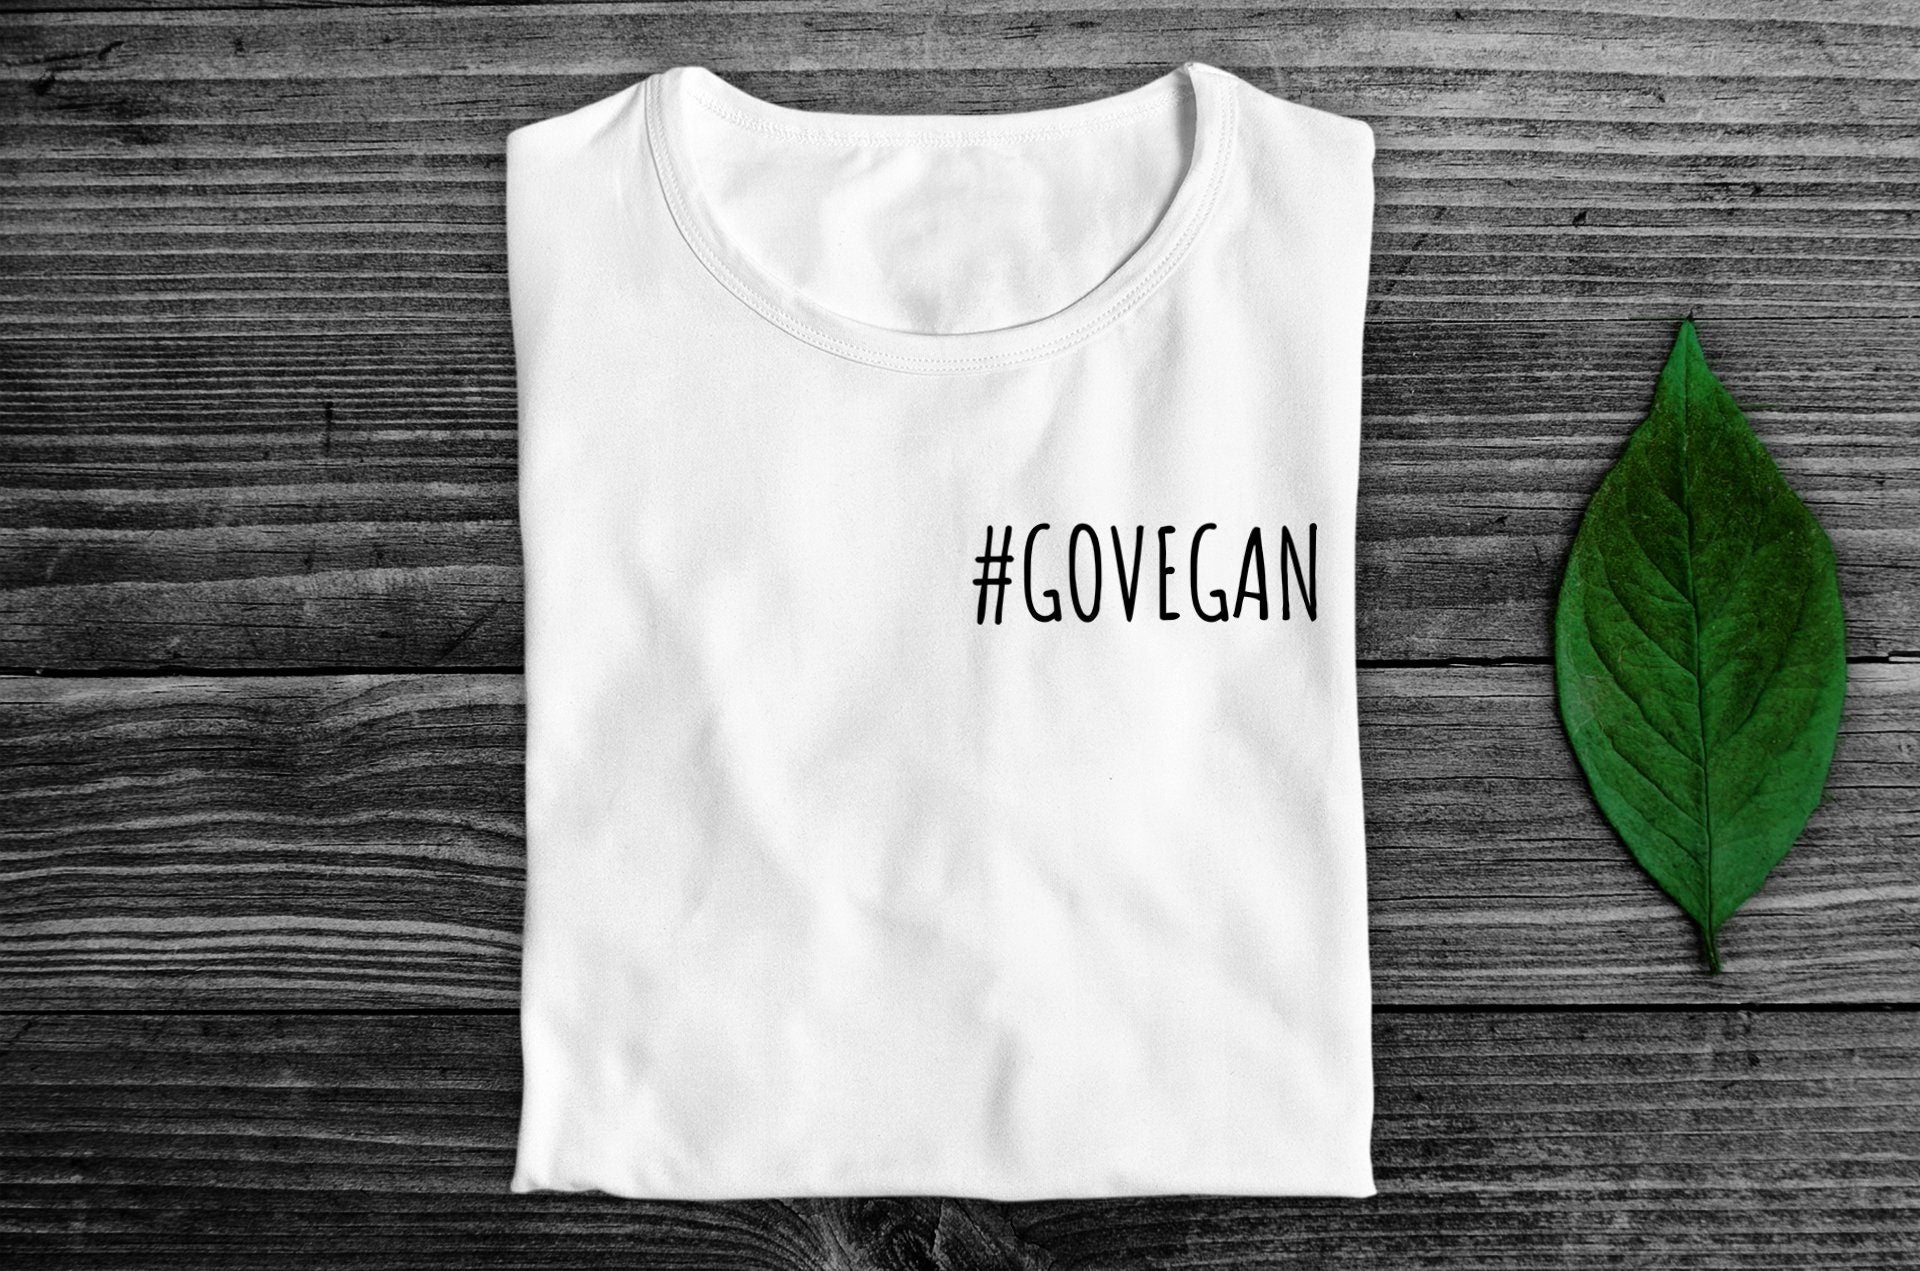 """#GOVEGAN"" Ethical T-Shirt - 100% Organic Cotton (Unisex) Clothing Vegan Original"